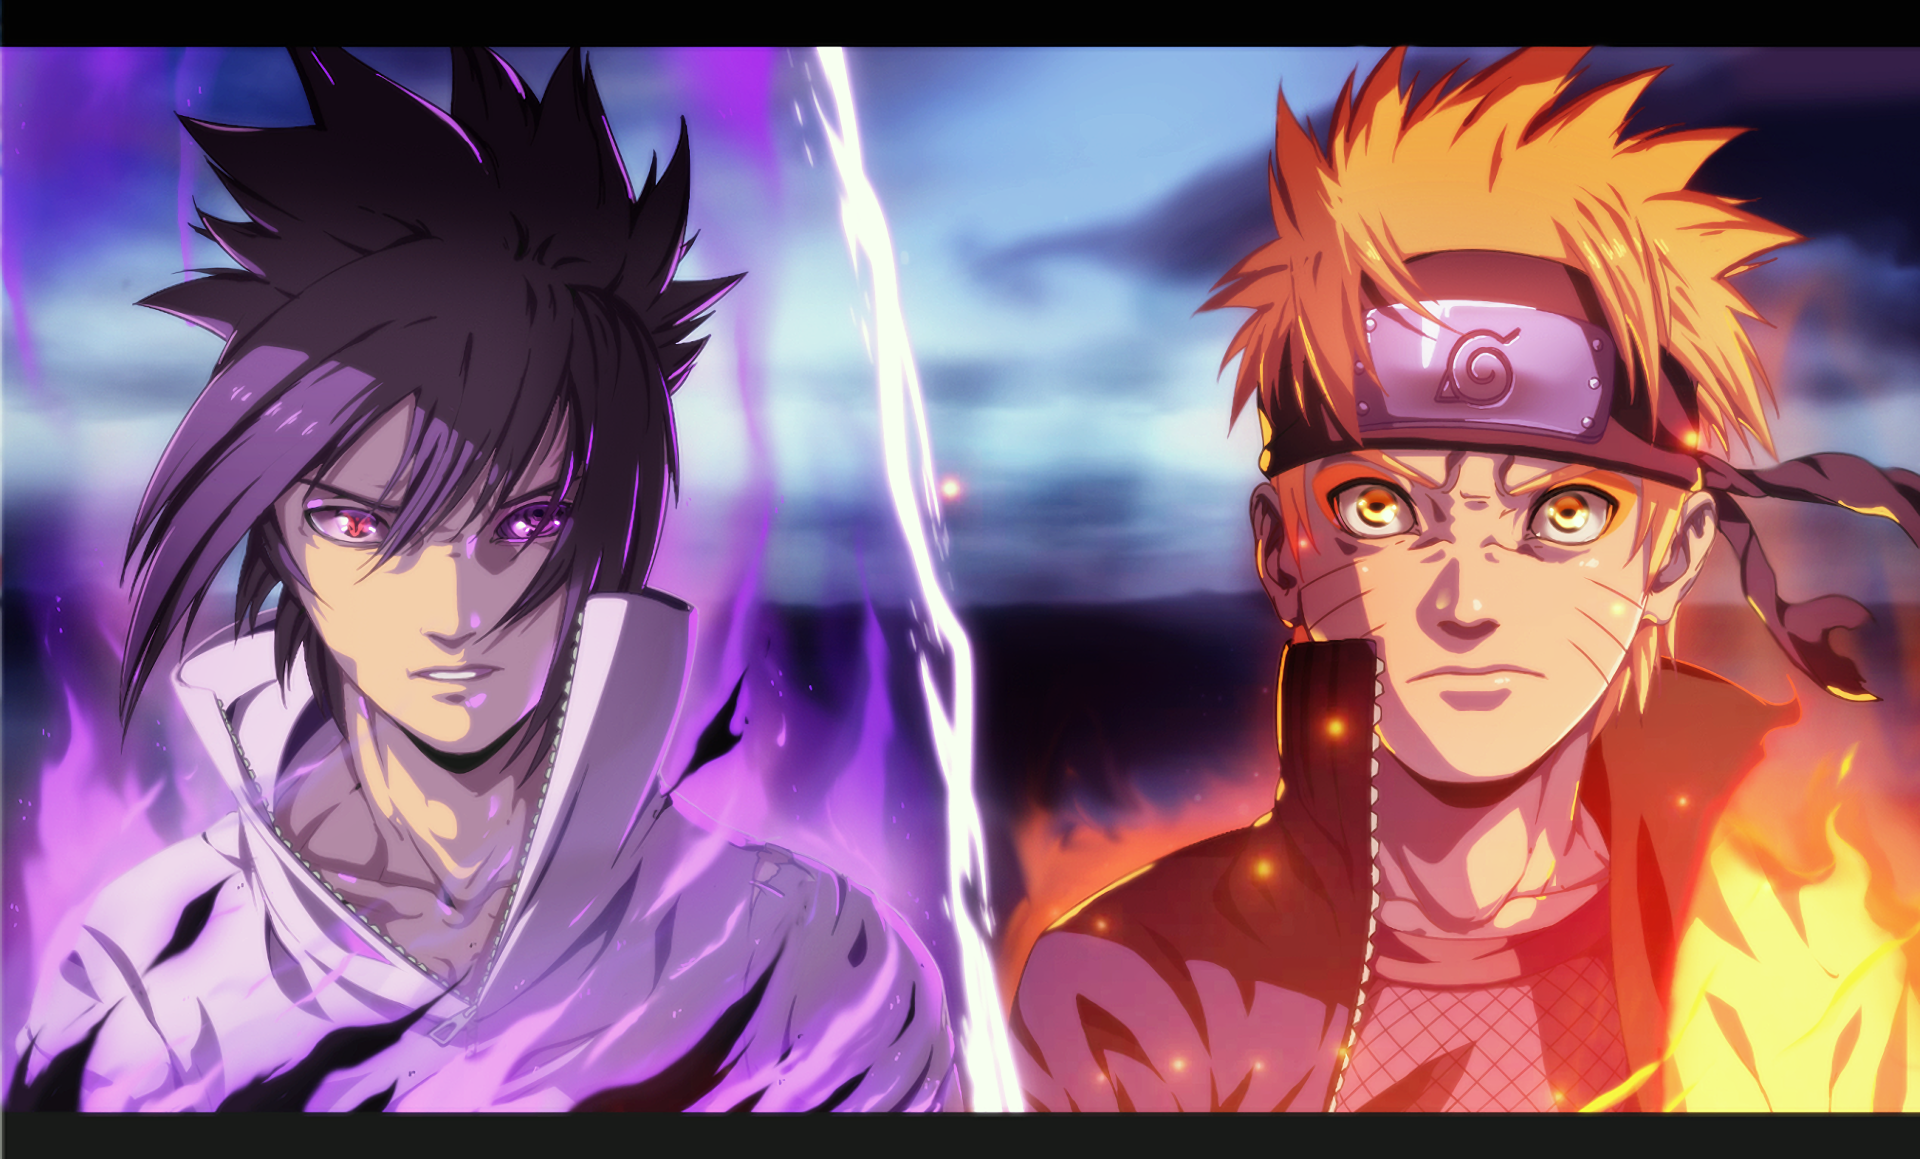 Naruto hd wallpaper background image 1920x1159 id 747154 wallpaper abyss - Naruto as sasuke ...